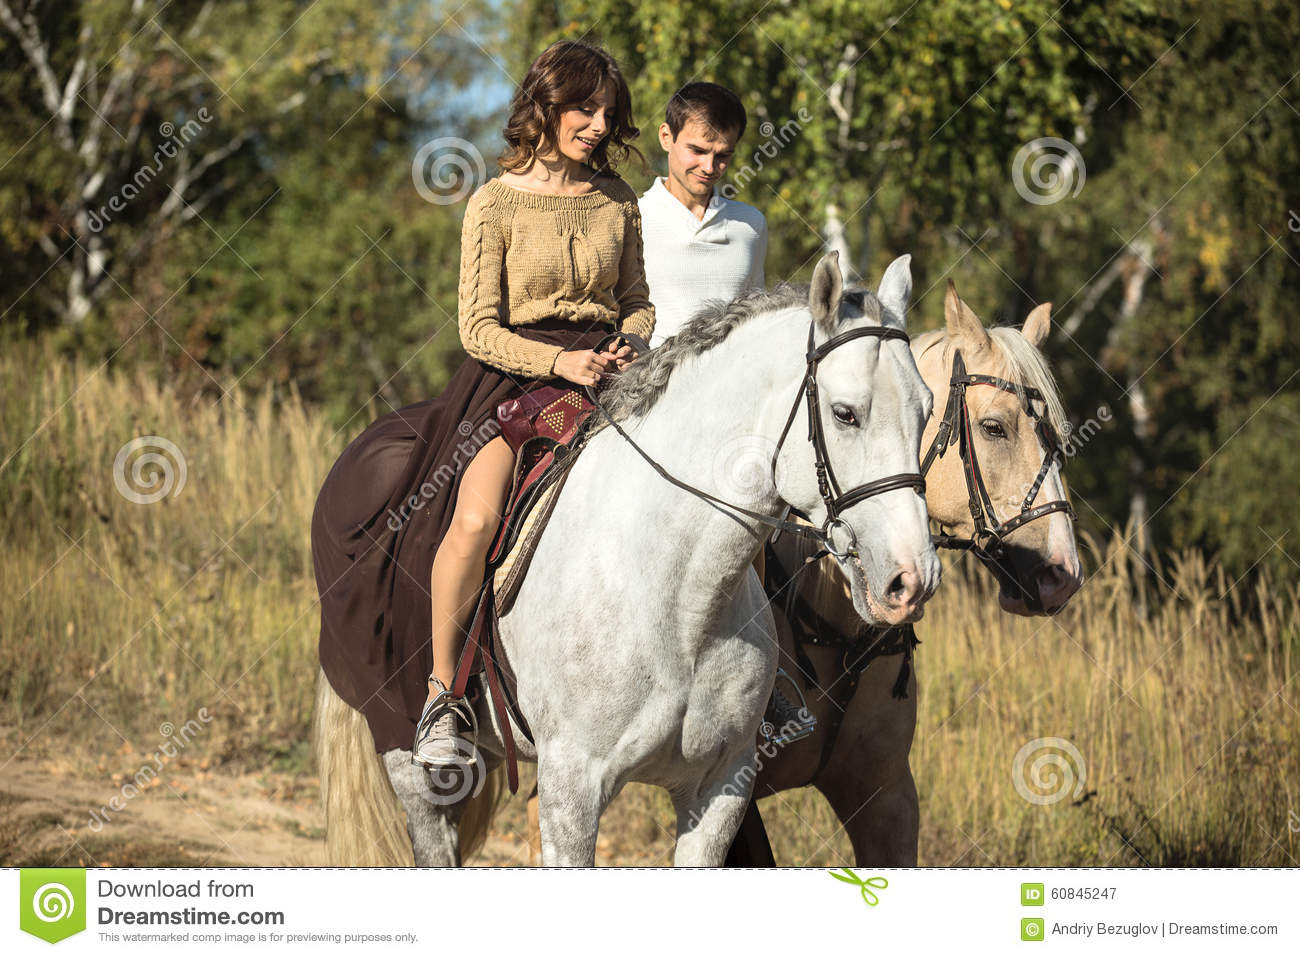 2 264 Couple Riding Horse Photos Free Royalty Free Stock Photos From Dreamstime